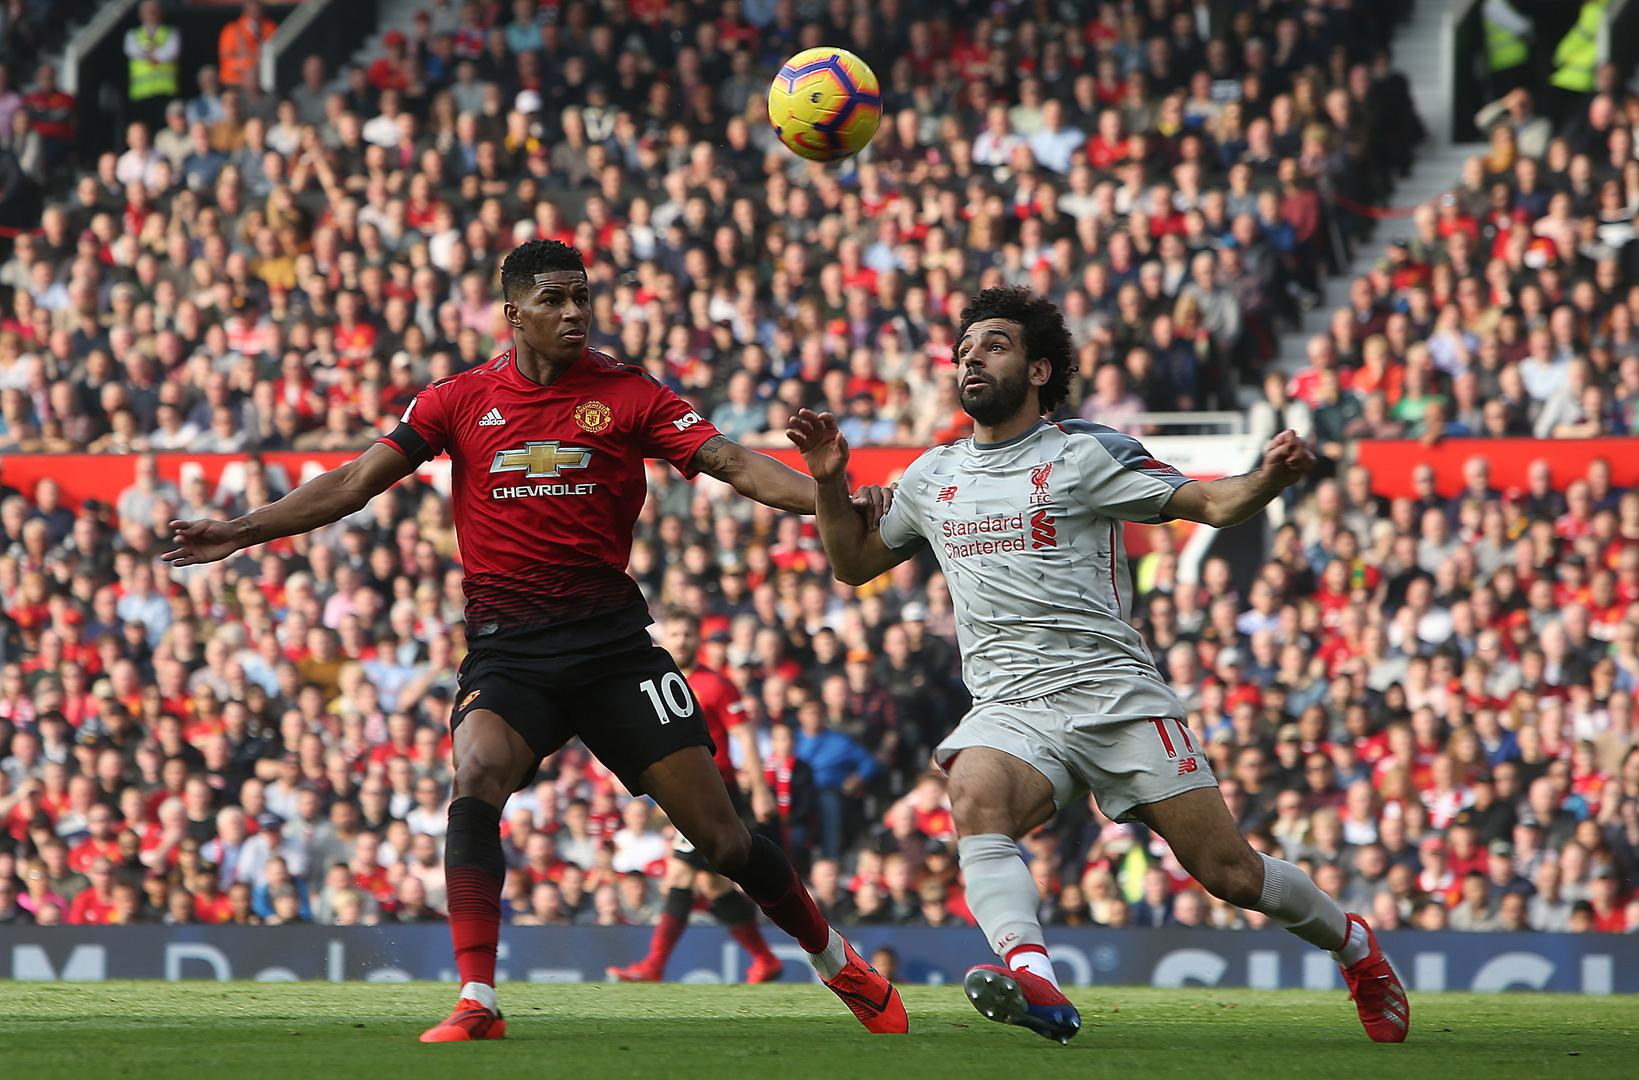 Marcus Rashford and Mohamed Salah battle for the ball during Manchester United's 0-0 draw with Liverpool.